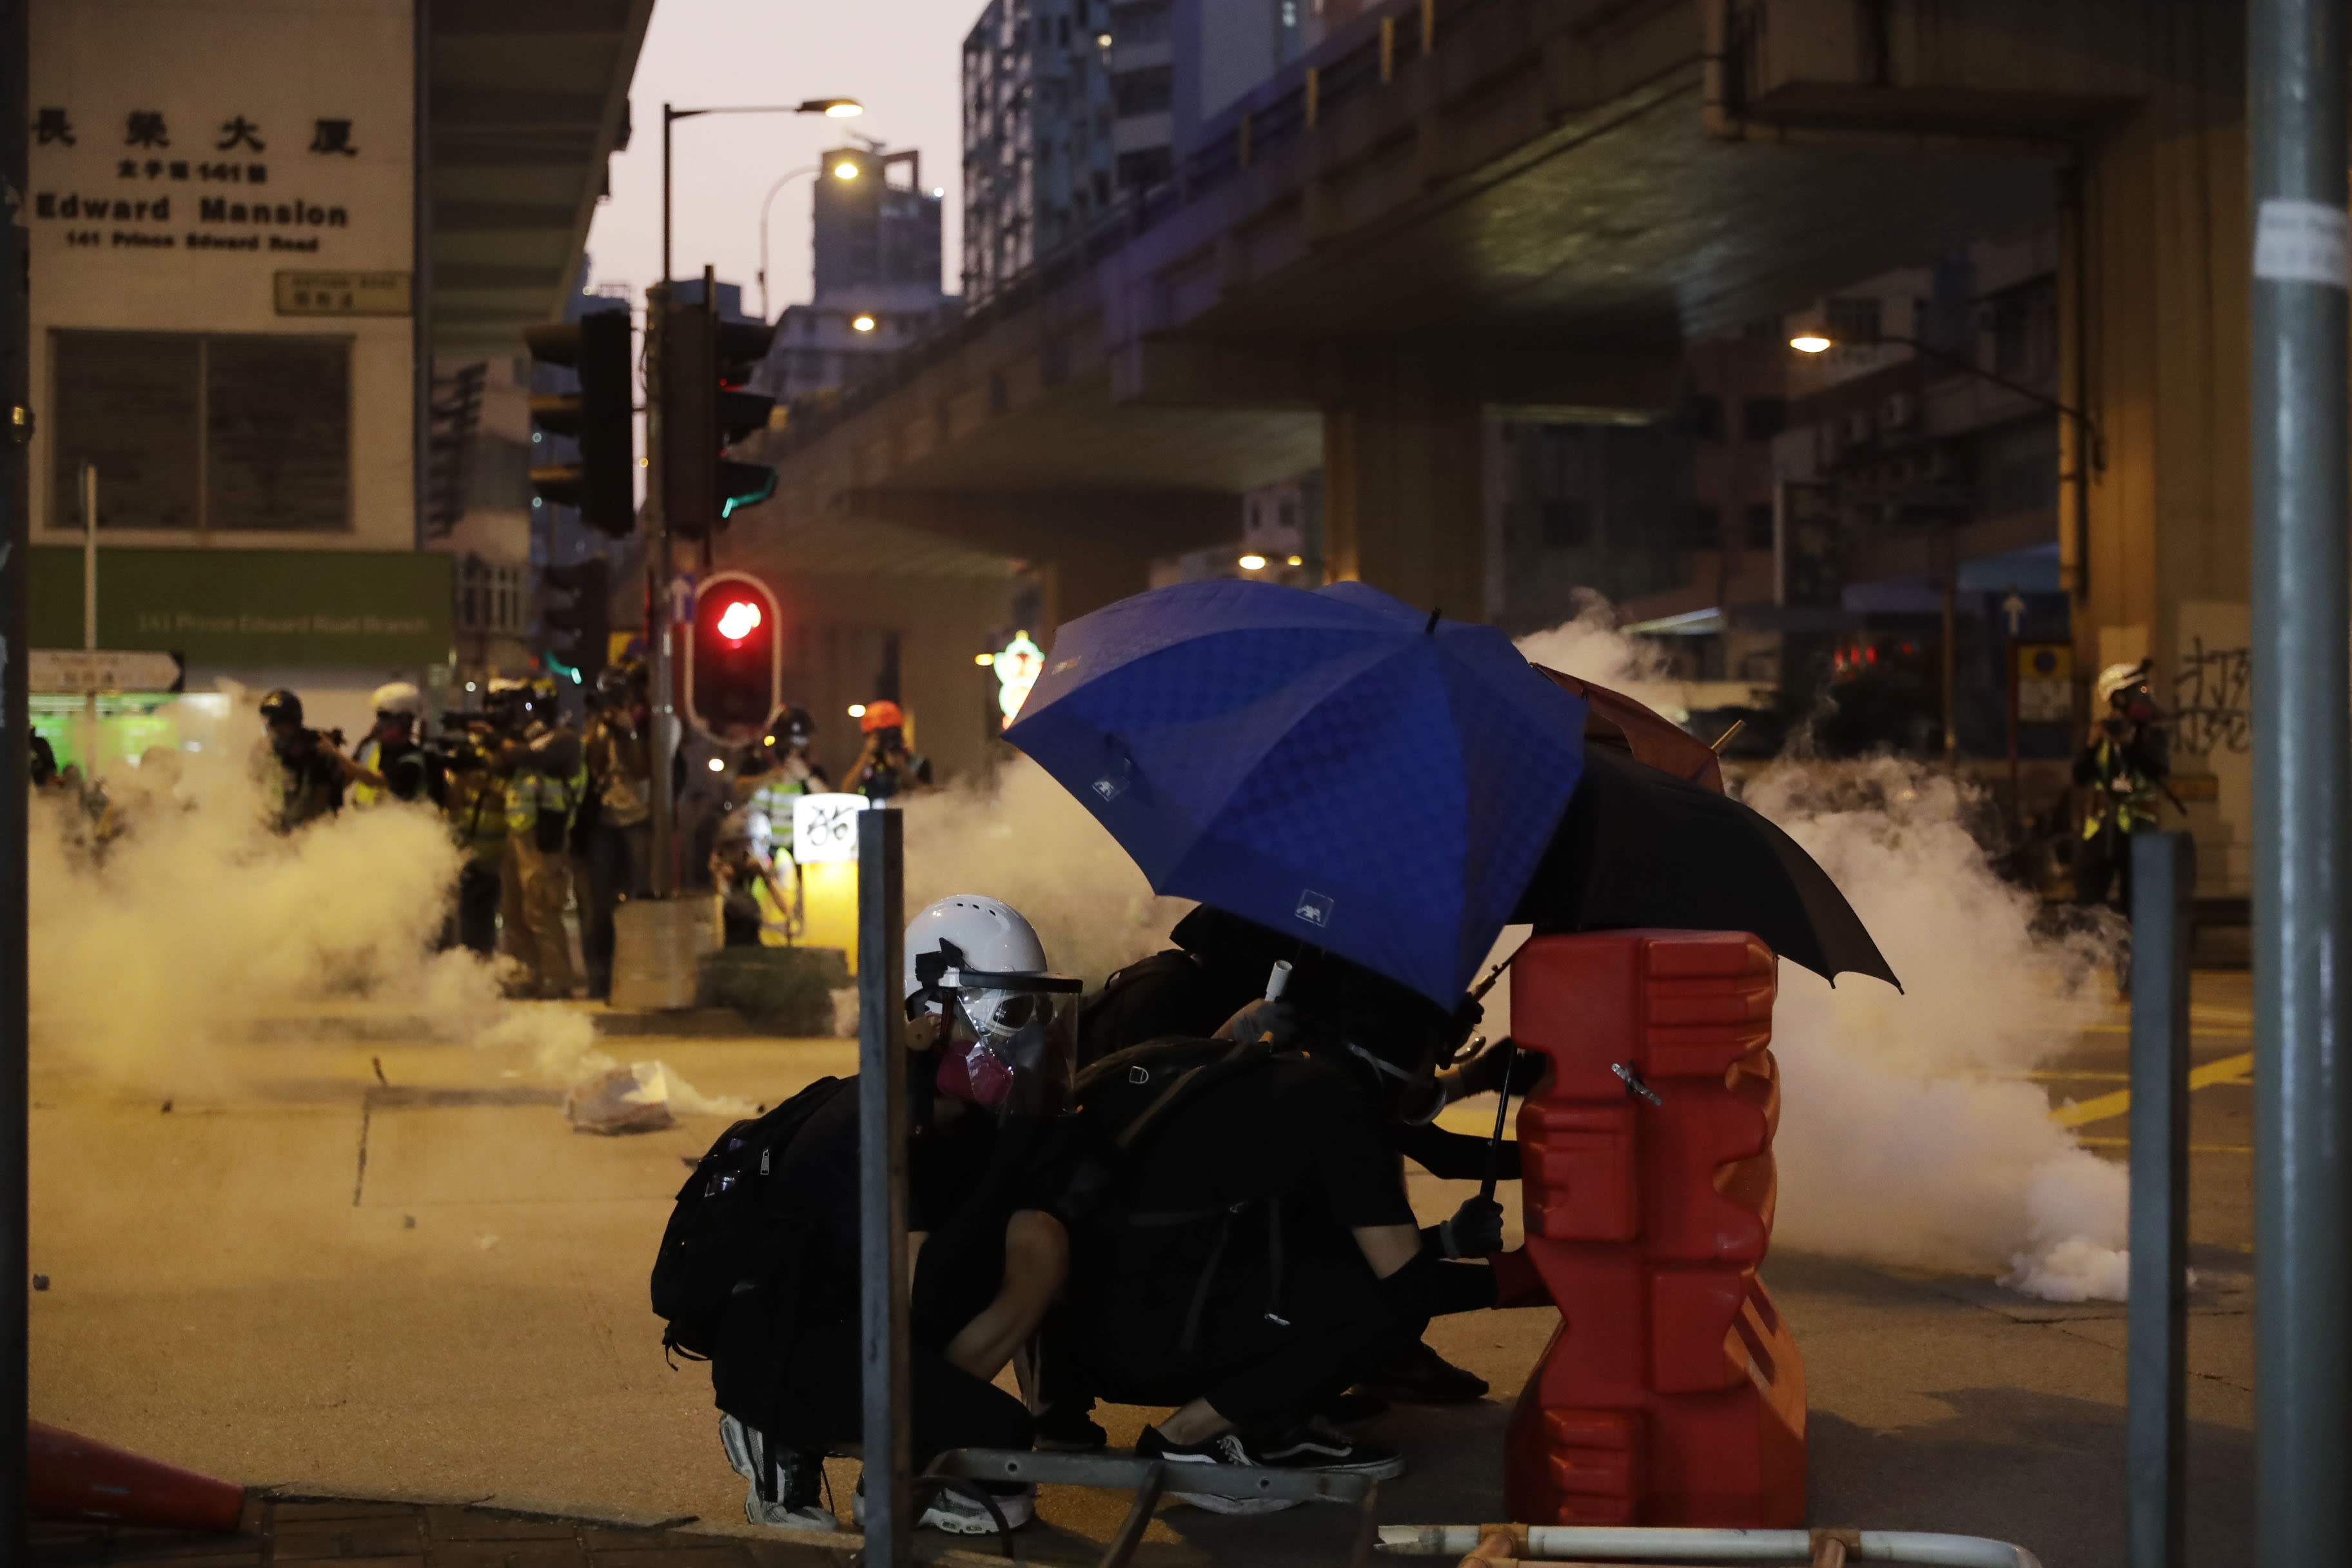 Protestors face police tear smoke in Hong Kong, Sunday, Oct. 20, 2019. Hong Kong protesters again flooded streets on Sunday, ignoring a police ban on the rally and setting up barricades amid tear gas and firebombs. (AP Photo//Mark Schiefelbein)